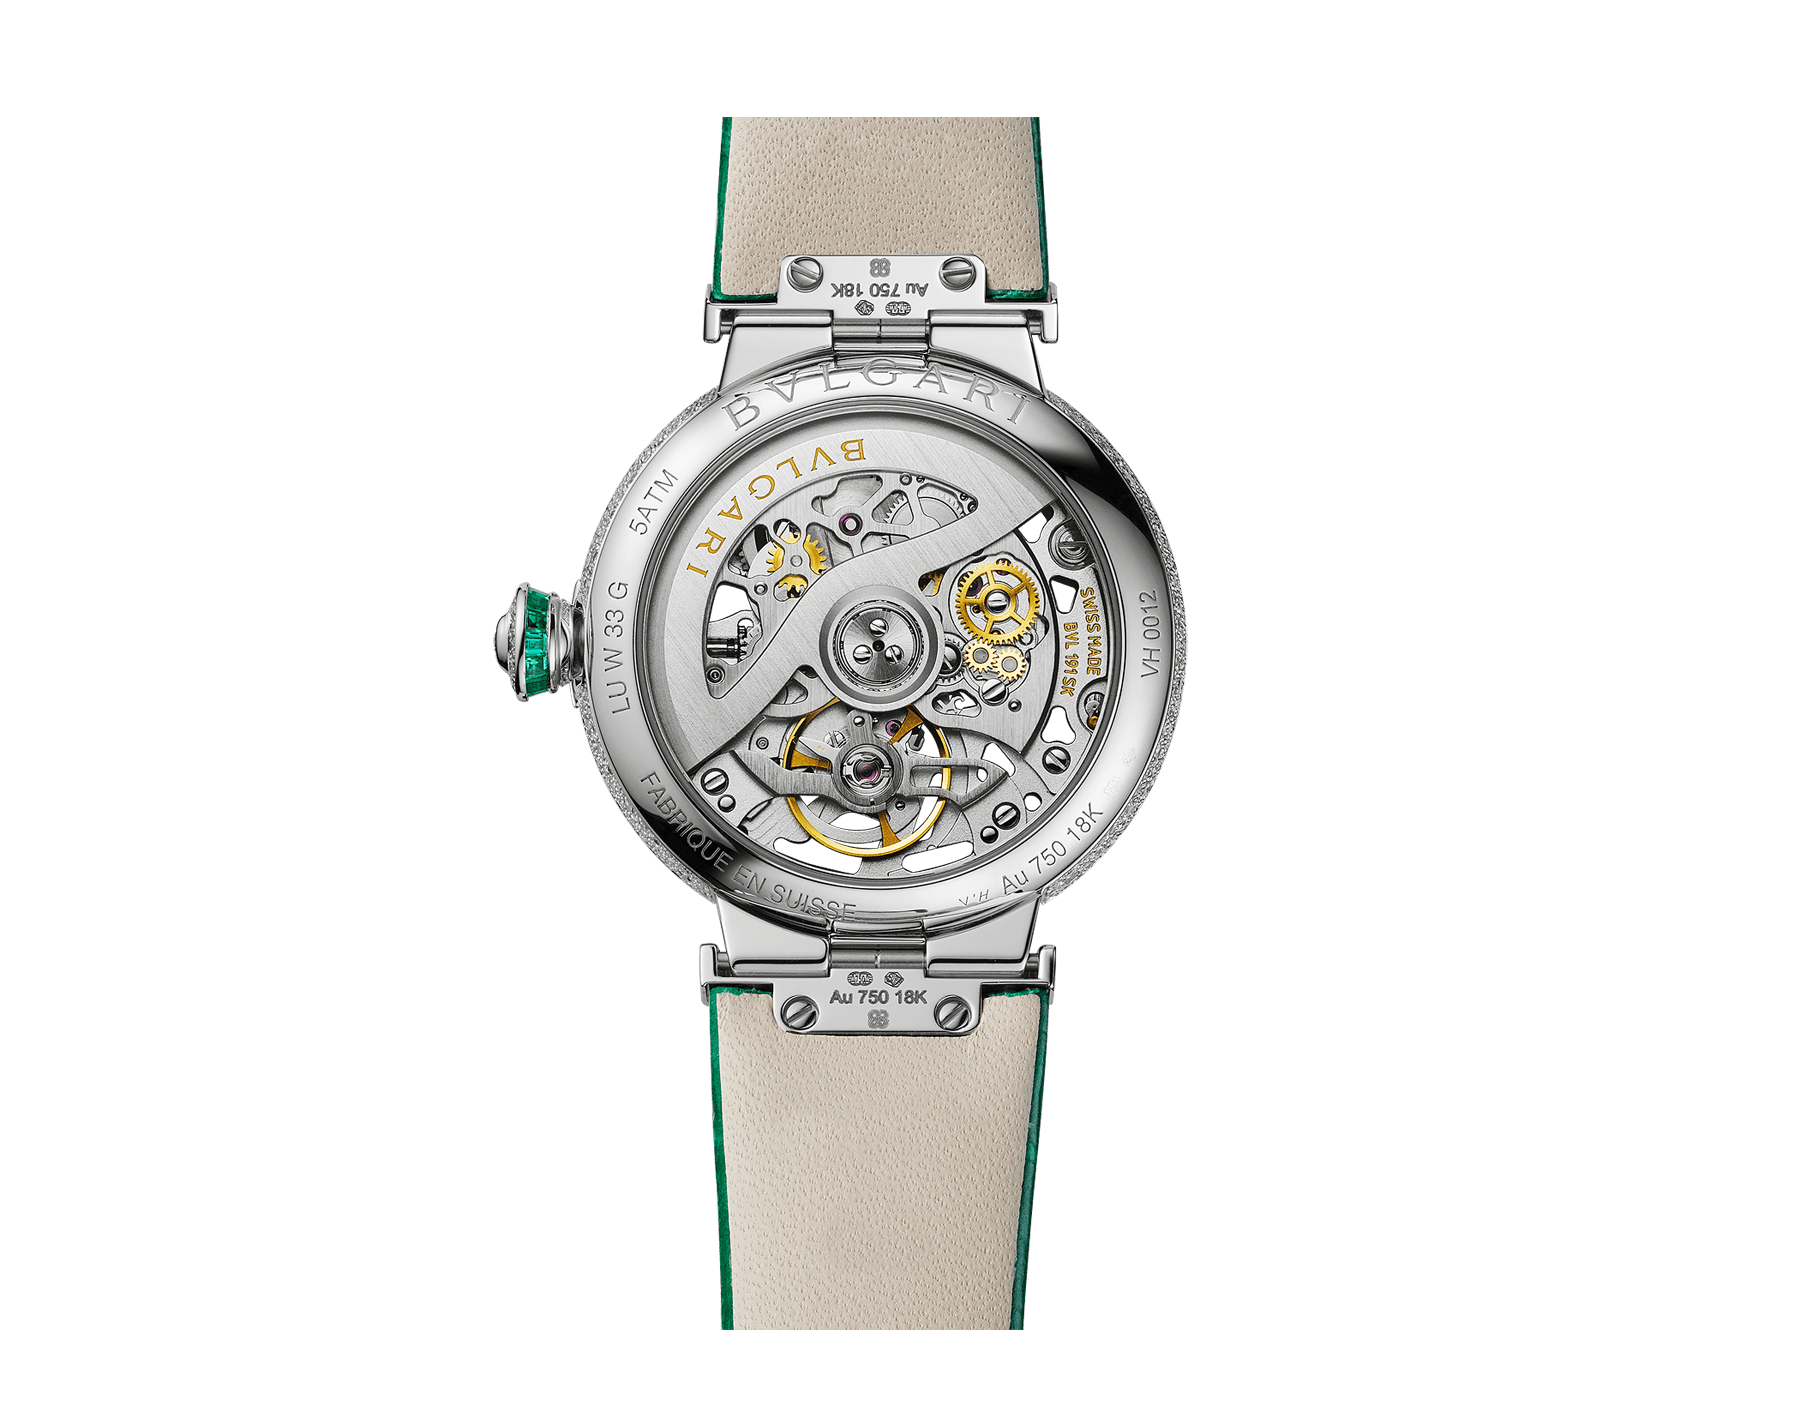 LVCEA Skeleton watch with mechanical movement, automatic winding, 18 kt white gold case set with baguette-cut emeralds, 18 kt white gold openwork BVLGARI logo dial set with brilliant-cut diamonds, green alligator bracelet and 18 kt white gold links set with brilliant-cut diamonds 103033 image 4